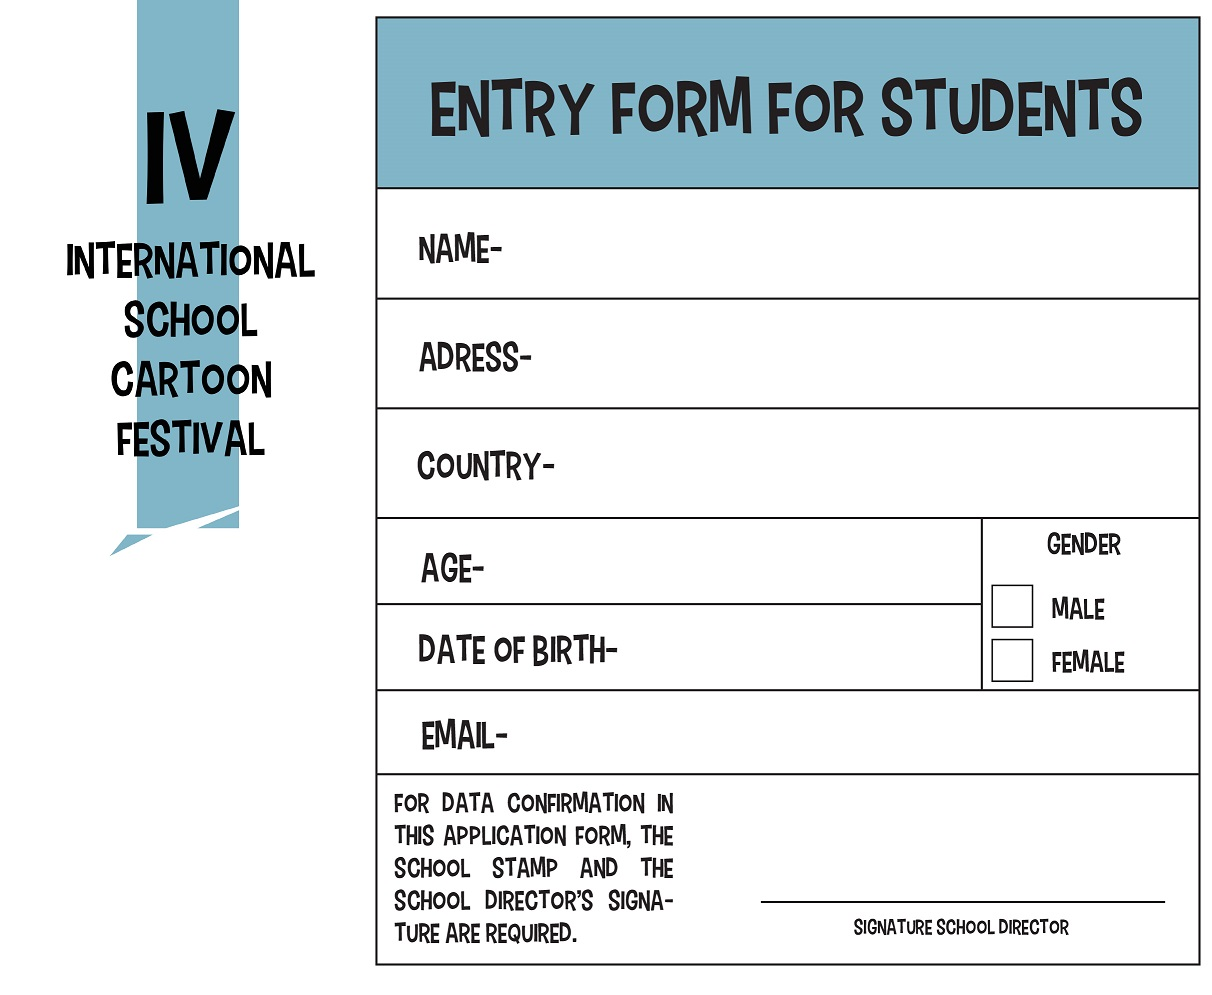 ENTRY FORM STUDENTS